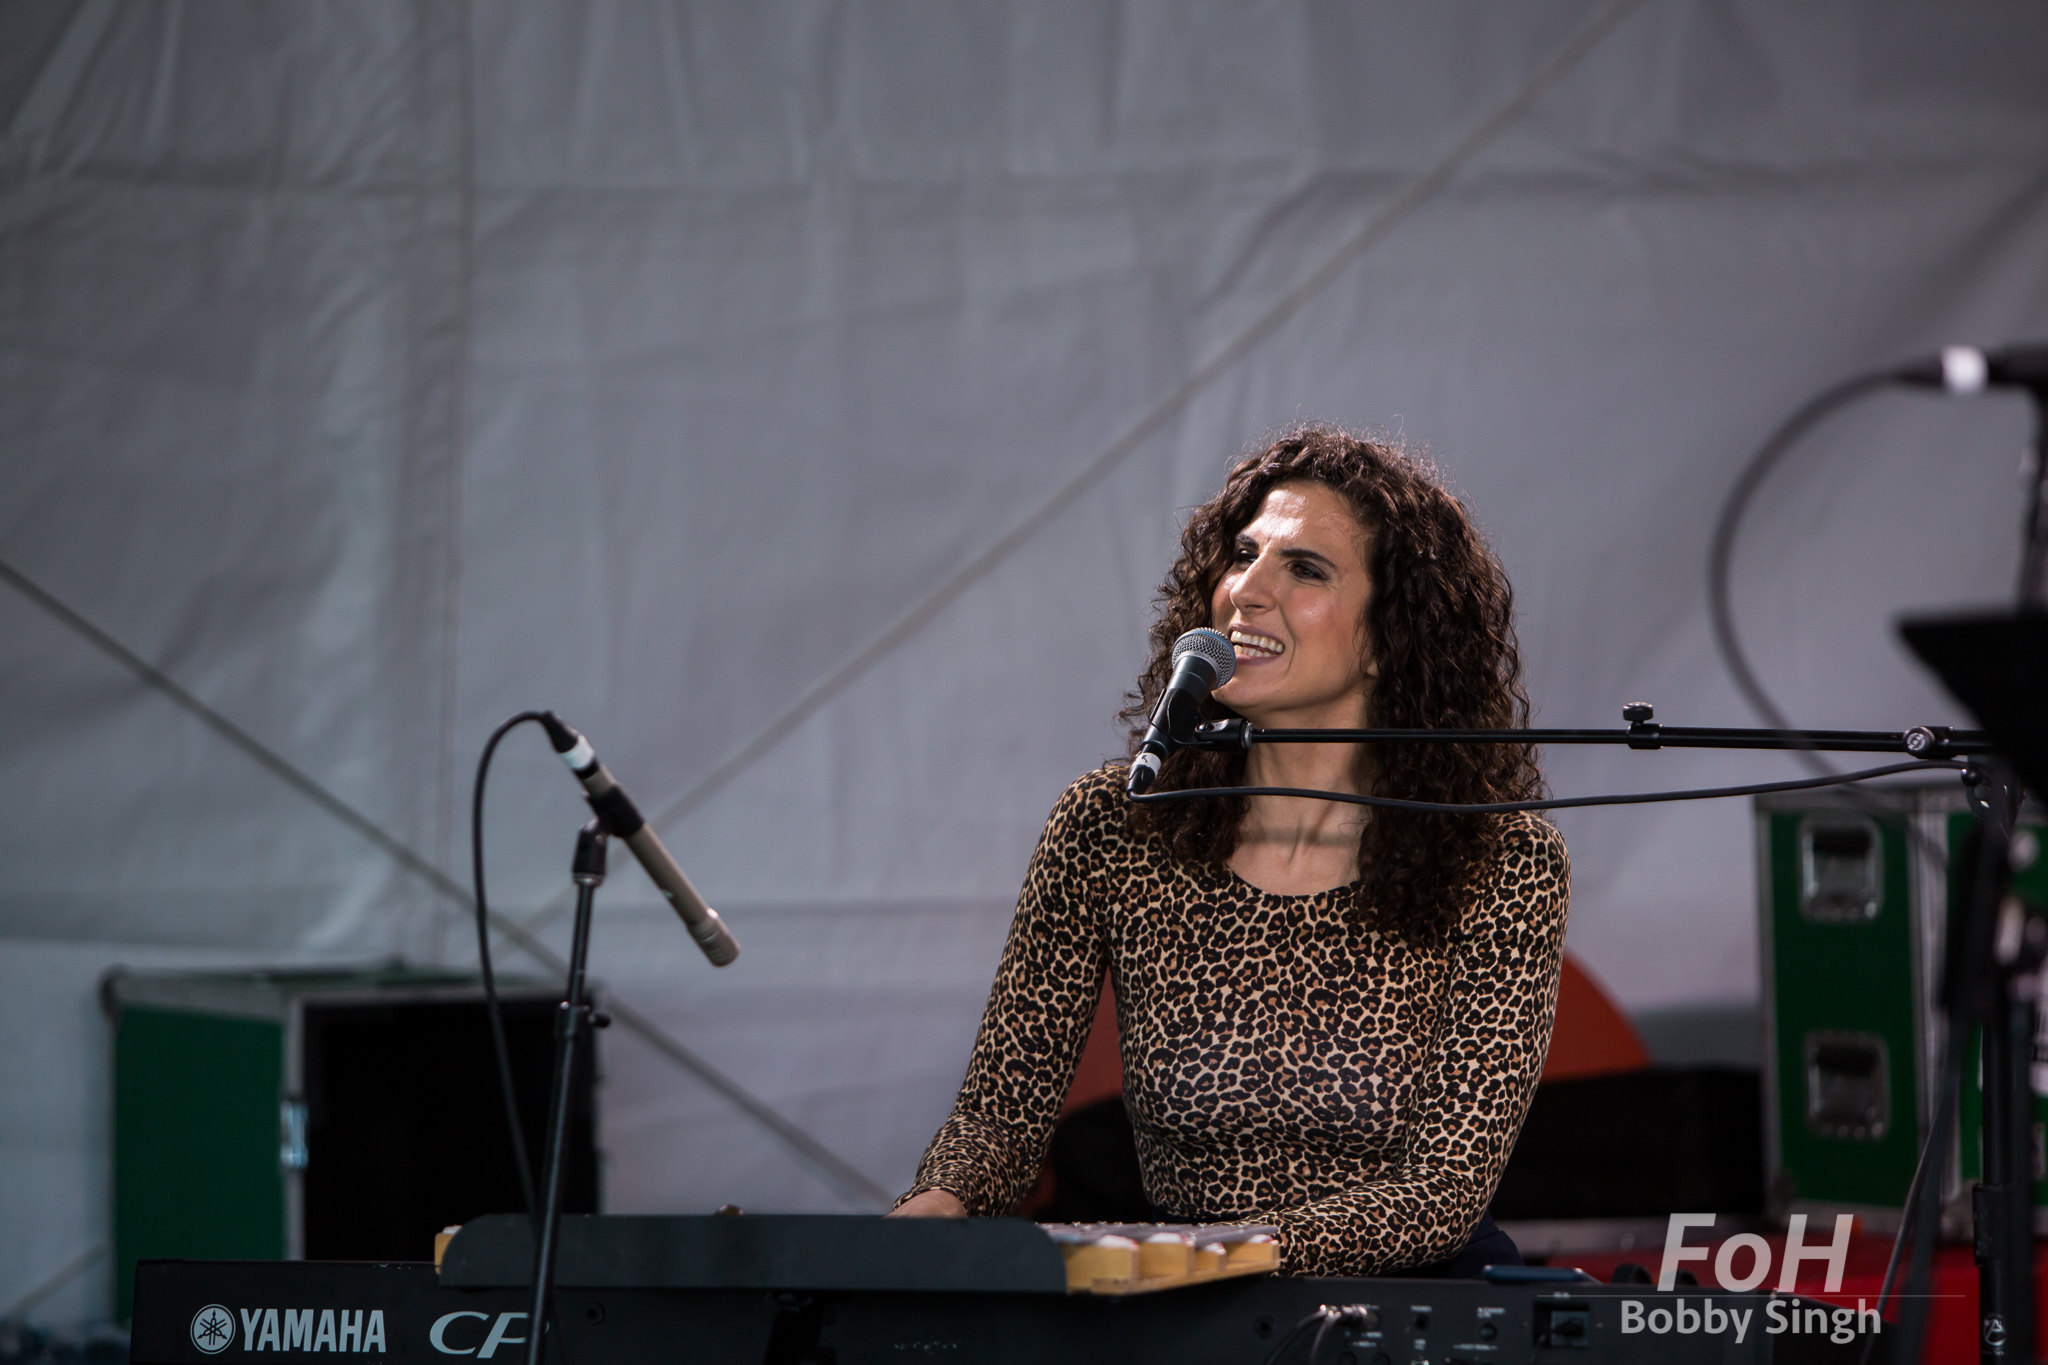 Jazz singer and pianist performs at the CBC Music Fest in Toronto, CANADA